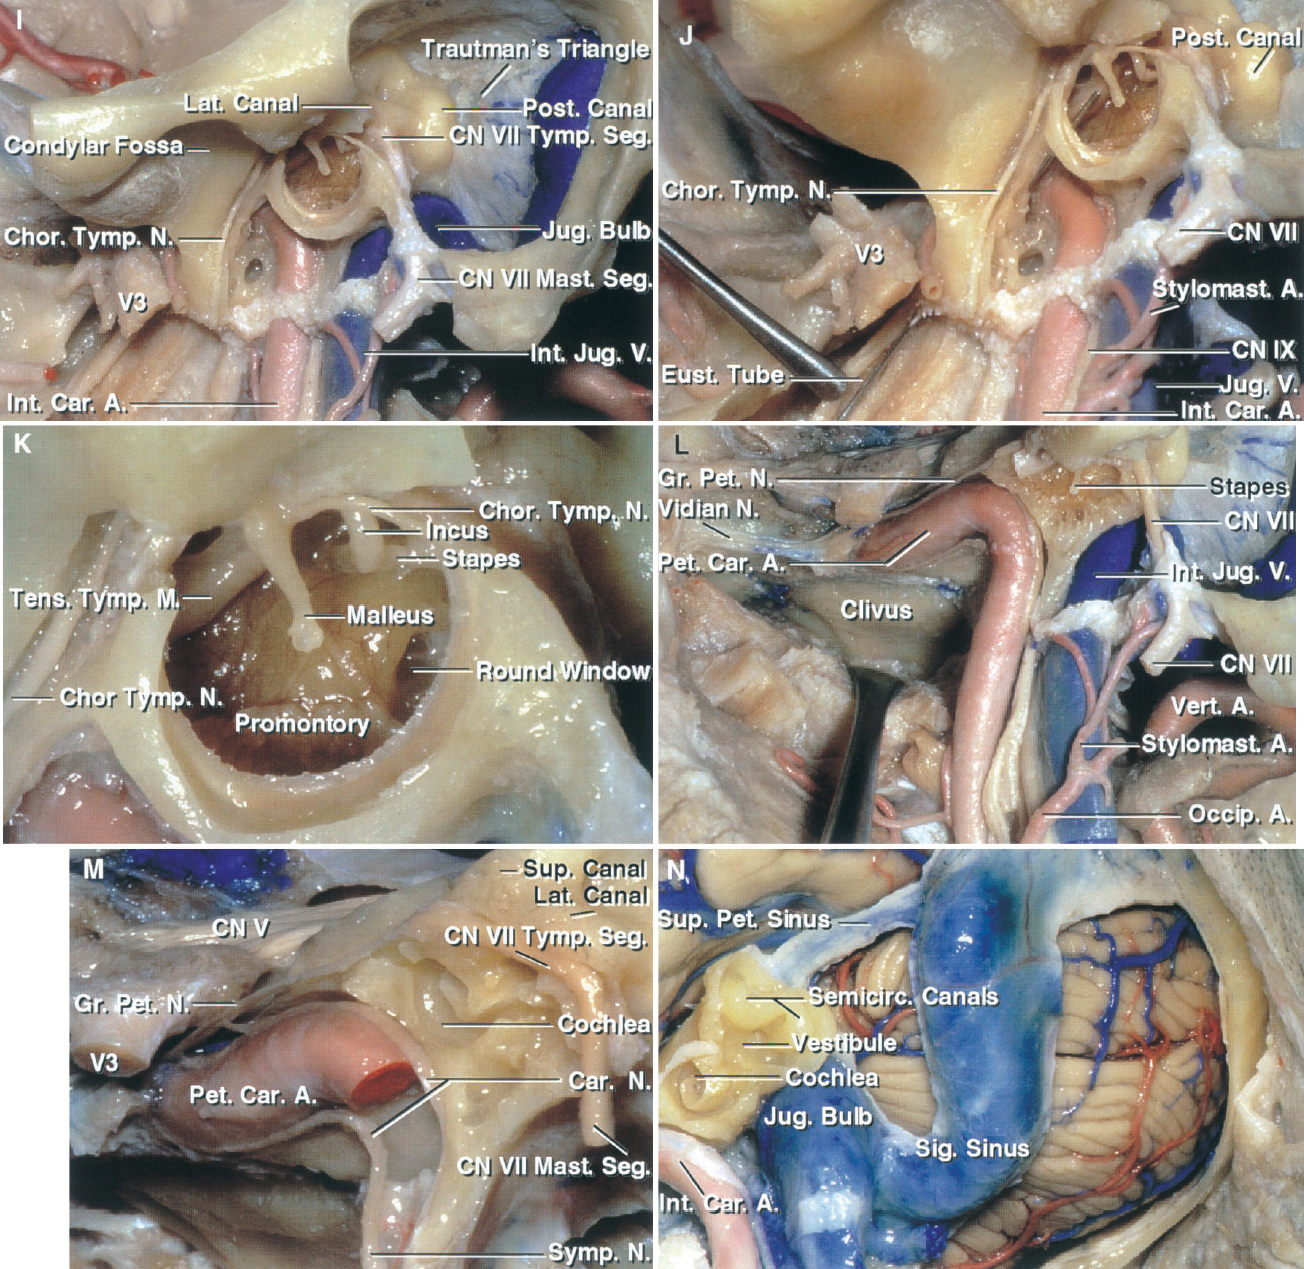 FIGURE 9.4. I–N. I, lateral view of mastoid and tympanic cavity before removing the tympanic ring. The tympanic segment of the facial nerve passes below the lateral semicircular canal and turns downward as the mastoid segment to exit the stylomastoid foramen. The stylomastoid foramen and the mastoid segment are located lateral to the jugular bulb. The semicircular canals are located above the jugular bulb. J, a probe has been placed in the eustachian tube, which passes downward, forward, and medially from the tympanic cavity and across the front of the petrous carotid. The third trigeminal division passes through the foramen ovale on the lateral side of the eustachian tube. K, enlarged view of the tympanic ring with the tympanic membrane removed. The tensor tympany muscle passes backward above the eustachian tube and gives rise to a tendon that turns sharply lateral around the trochleiform process to attach to the malleus. The chorda tympani crosses the inner surface of the tympanic membrane and neck of the malleus. The round window opens into the vestibule. The stapes sit in the oval window. The promontory is located lateral to the basal turn of the cochlea. L, the floor of the middle fossa and the tympanic sulcus have been removed to expose the jugular bulb and petrous carotid. The greater petrosal nerve courses along the floor of the middle fossa on the upper surface of the petrous carotid. The deep petrosal nerve arises from the sympathetic bundles on the internal carotid artery. The deep and greater petrosal nerves join to form the vidian nerve, which passes forward through the vidian canal to join the maxillary nerve and pterygopalatine ganglion in the pterygopalatine fossa. The pharyngobasilar fascia and upper part of the longus capitis have been reflected downward to expose the lower margin of the clivus. M, the jugular bulb has been removed from the jugular fossa located below the vestibule and semicircular canals. The vertical segment of the petrous caroti